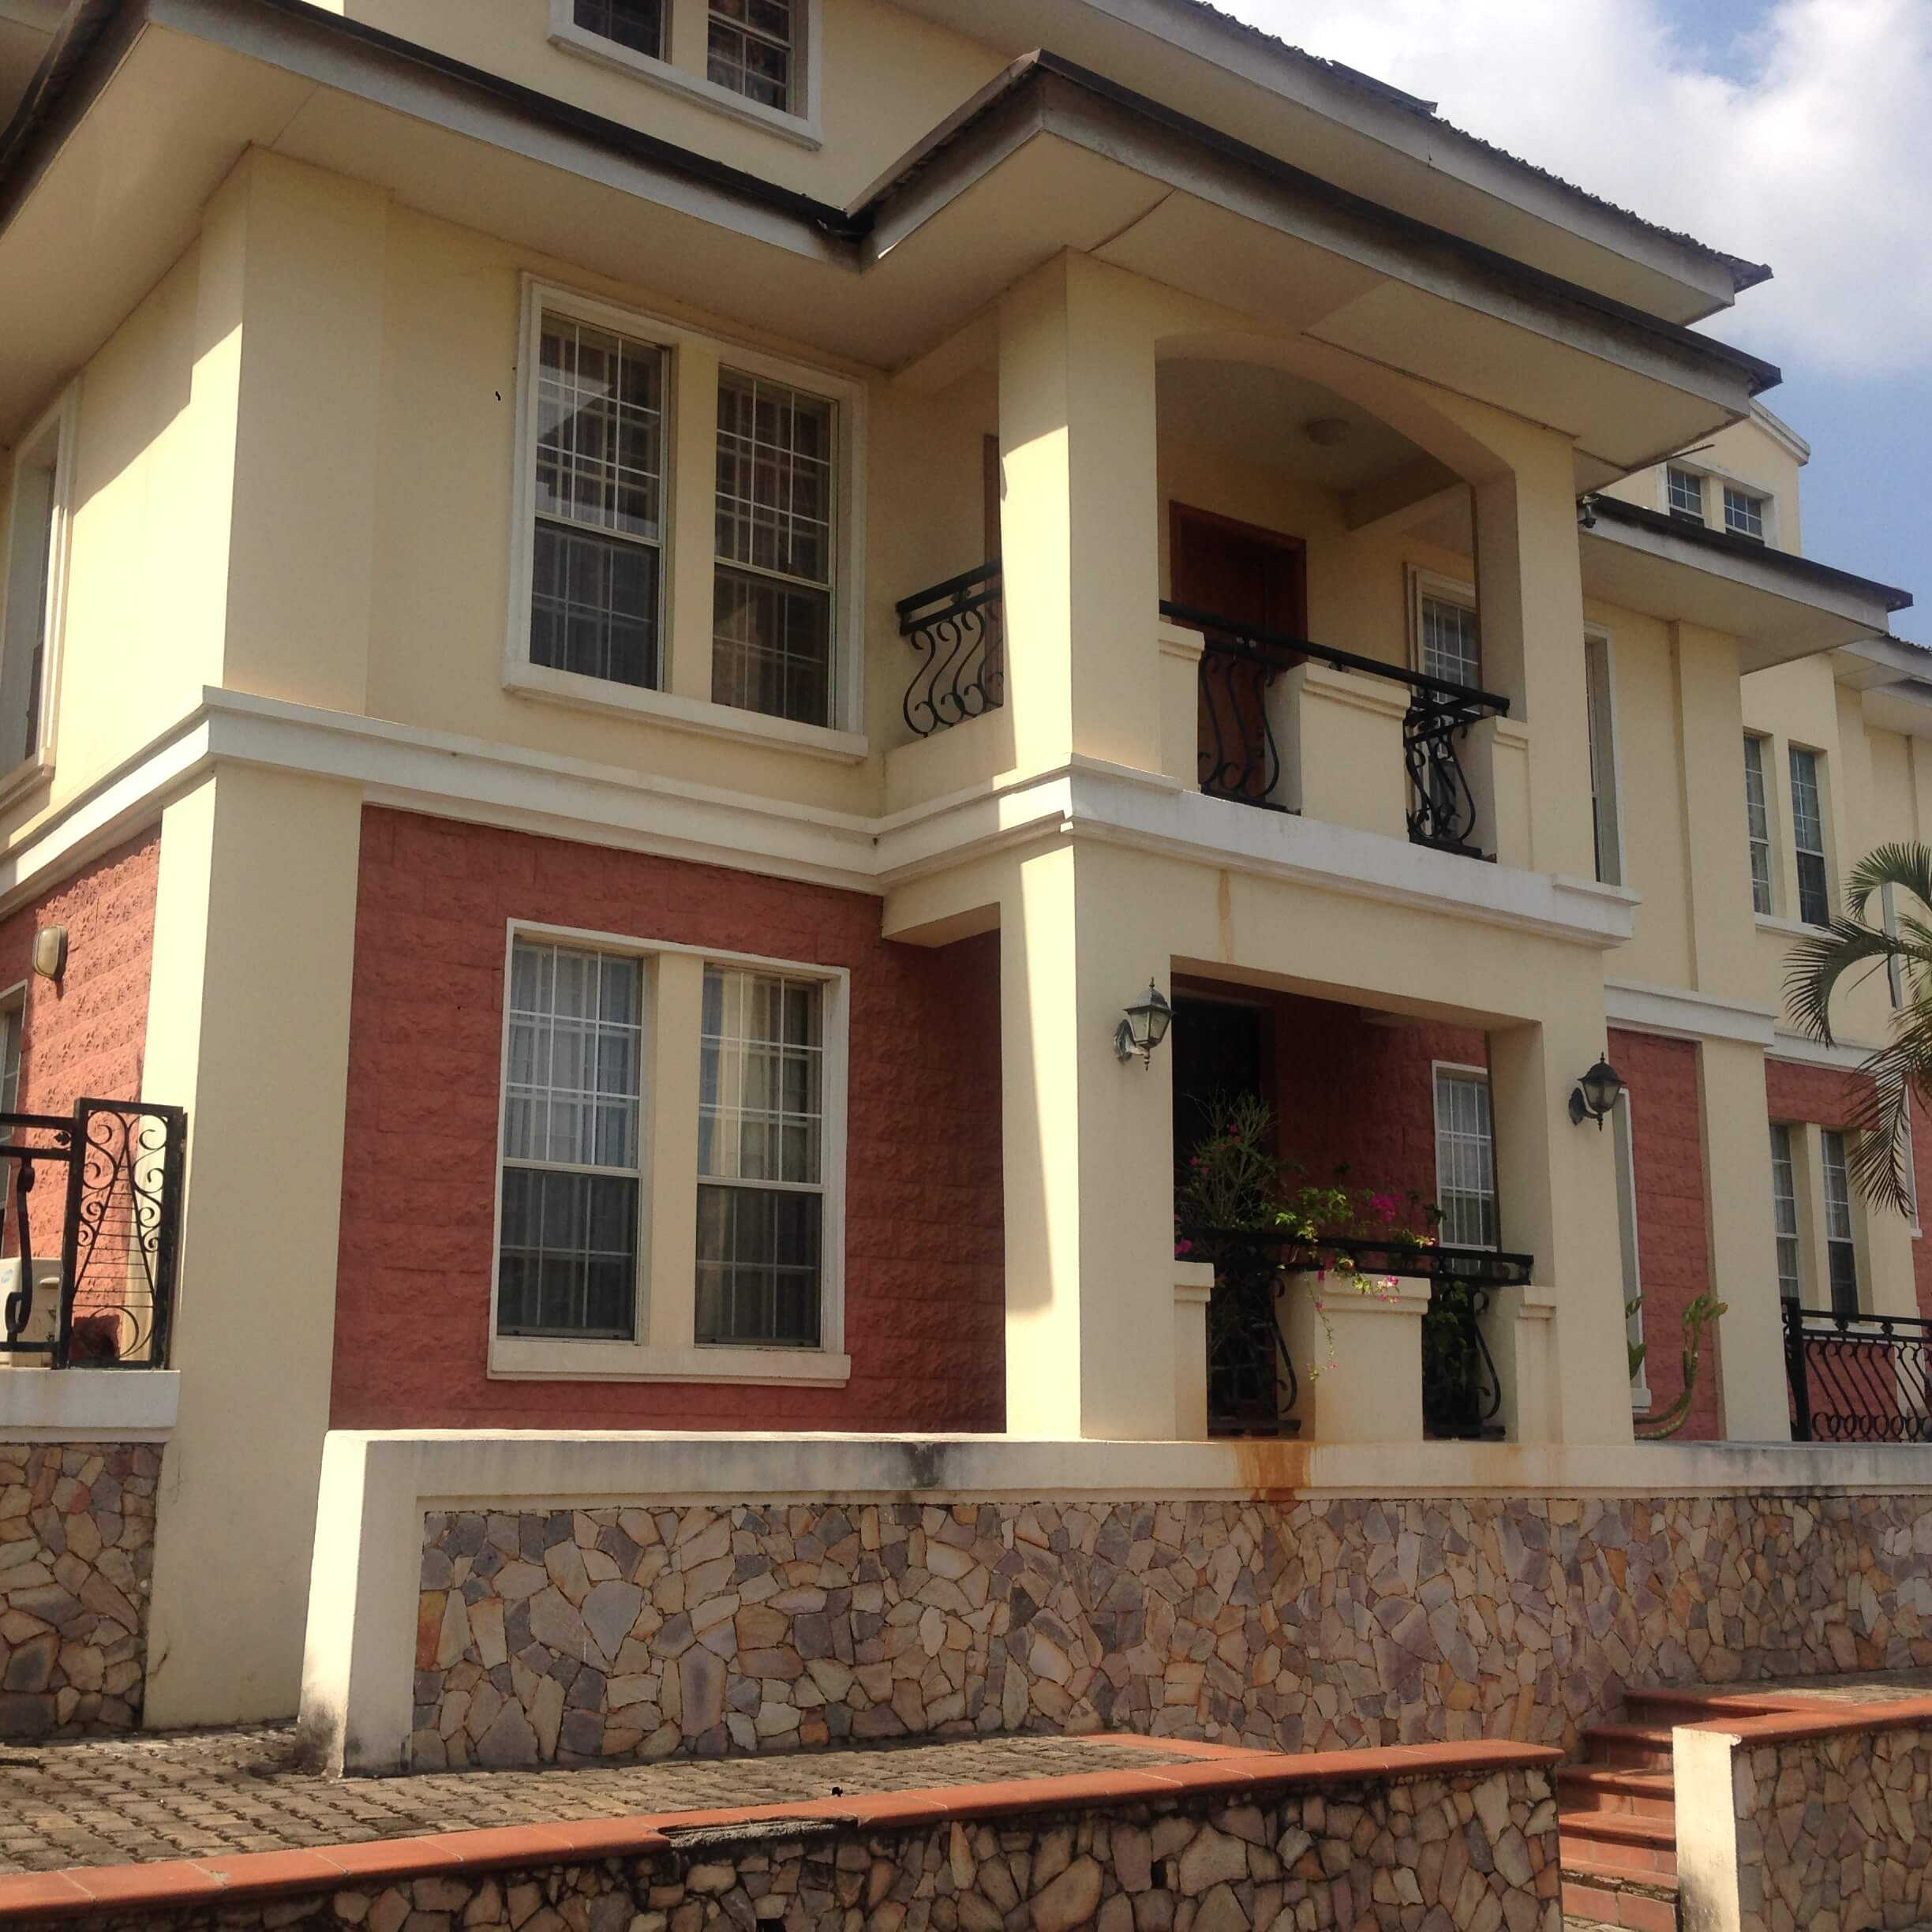 Three Bedroom Rentals: 3 Bedroom Apartment For Rent In Maitama